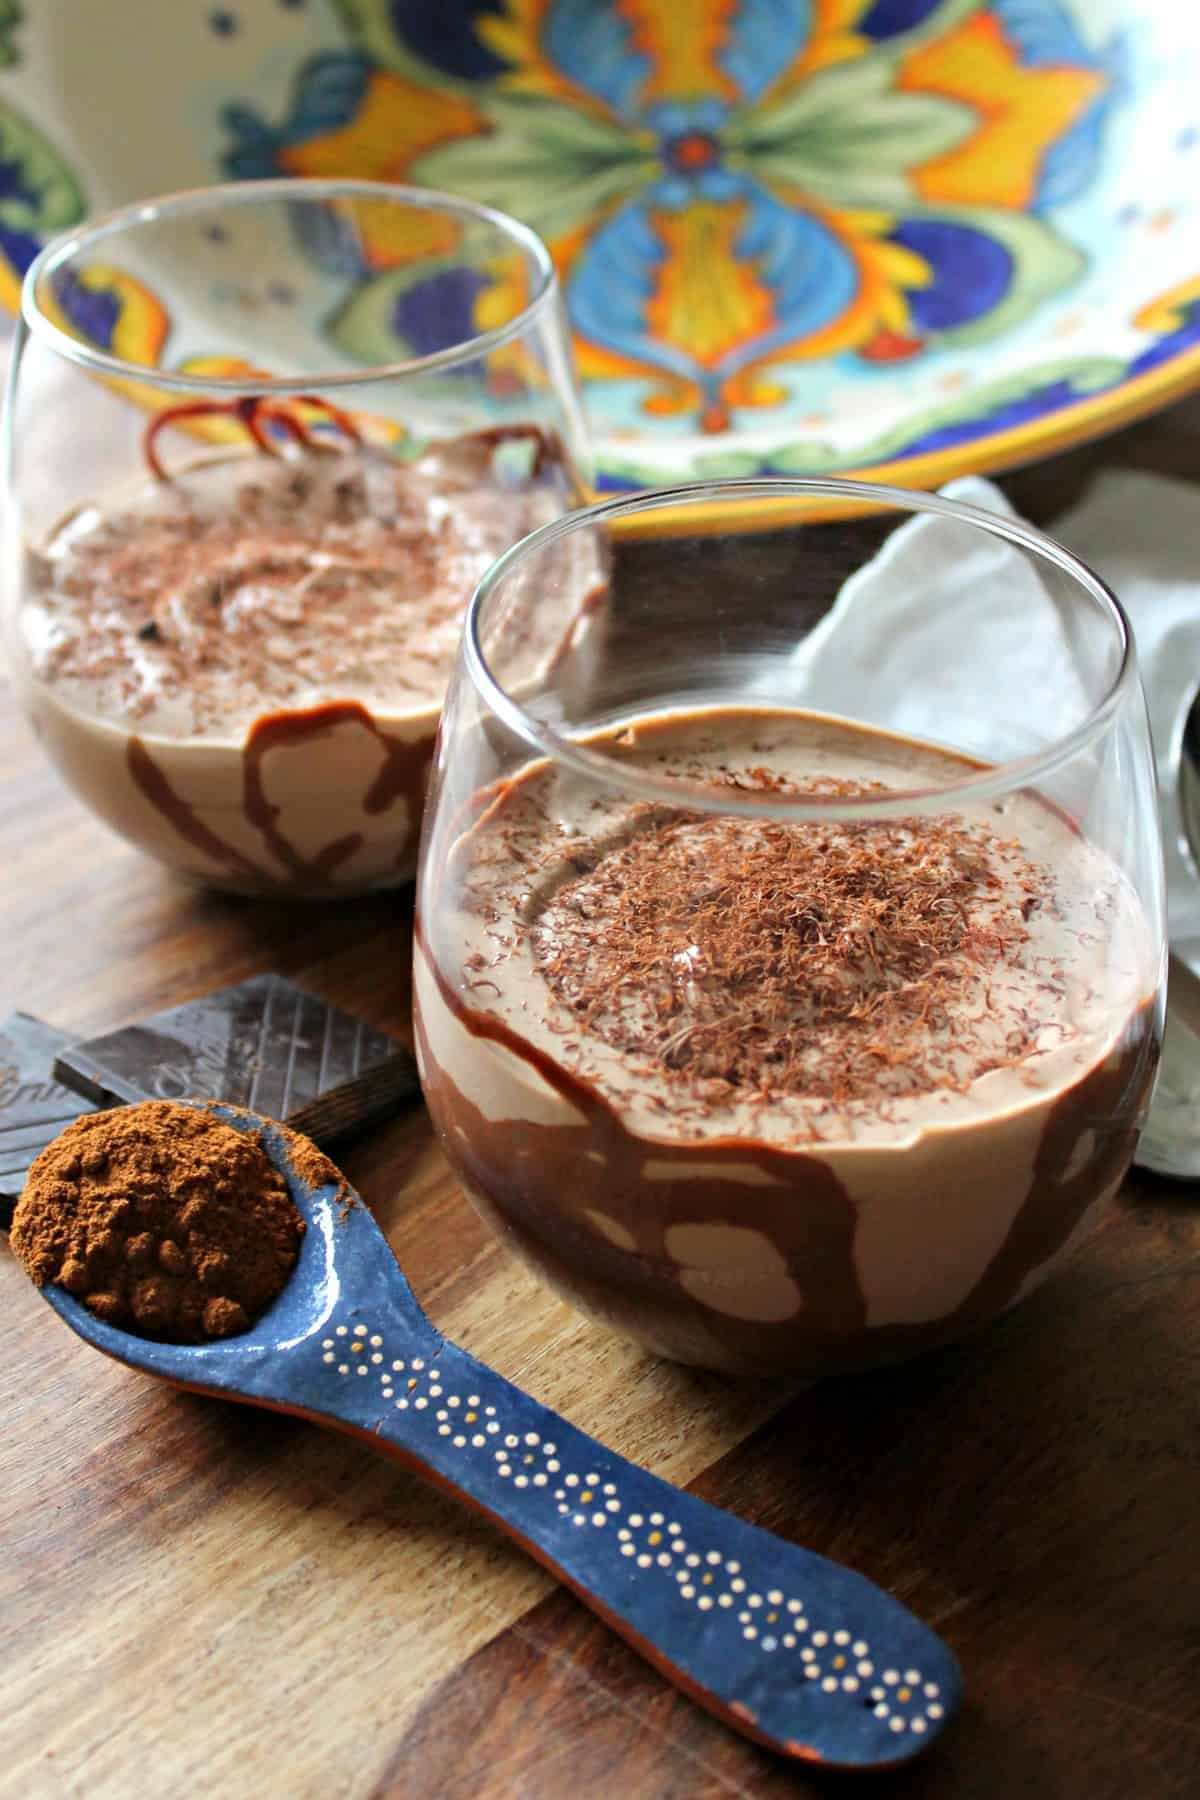 Mexican Chocolate Yogurt Mousse Cups! The warm, rich flavors of cinnamon-scented Mexican hot chocolate are present in this smooth, creamy treat.